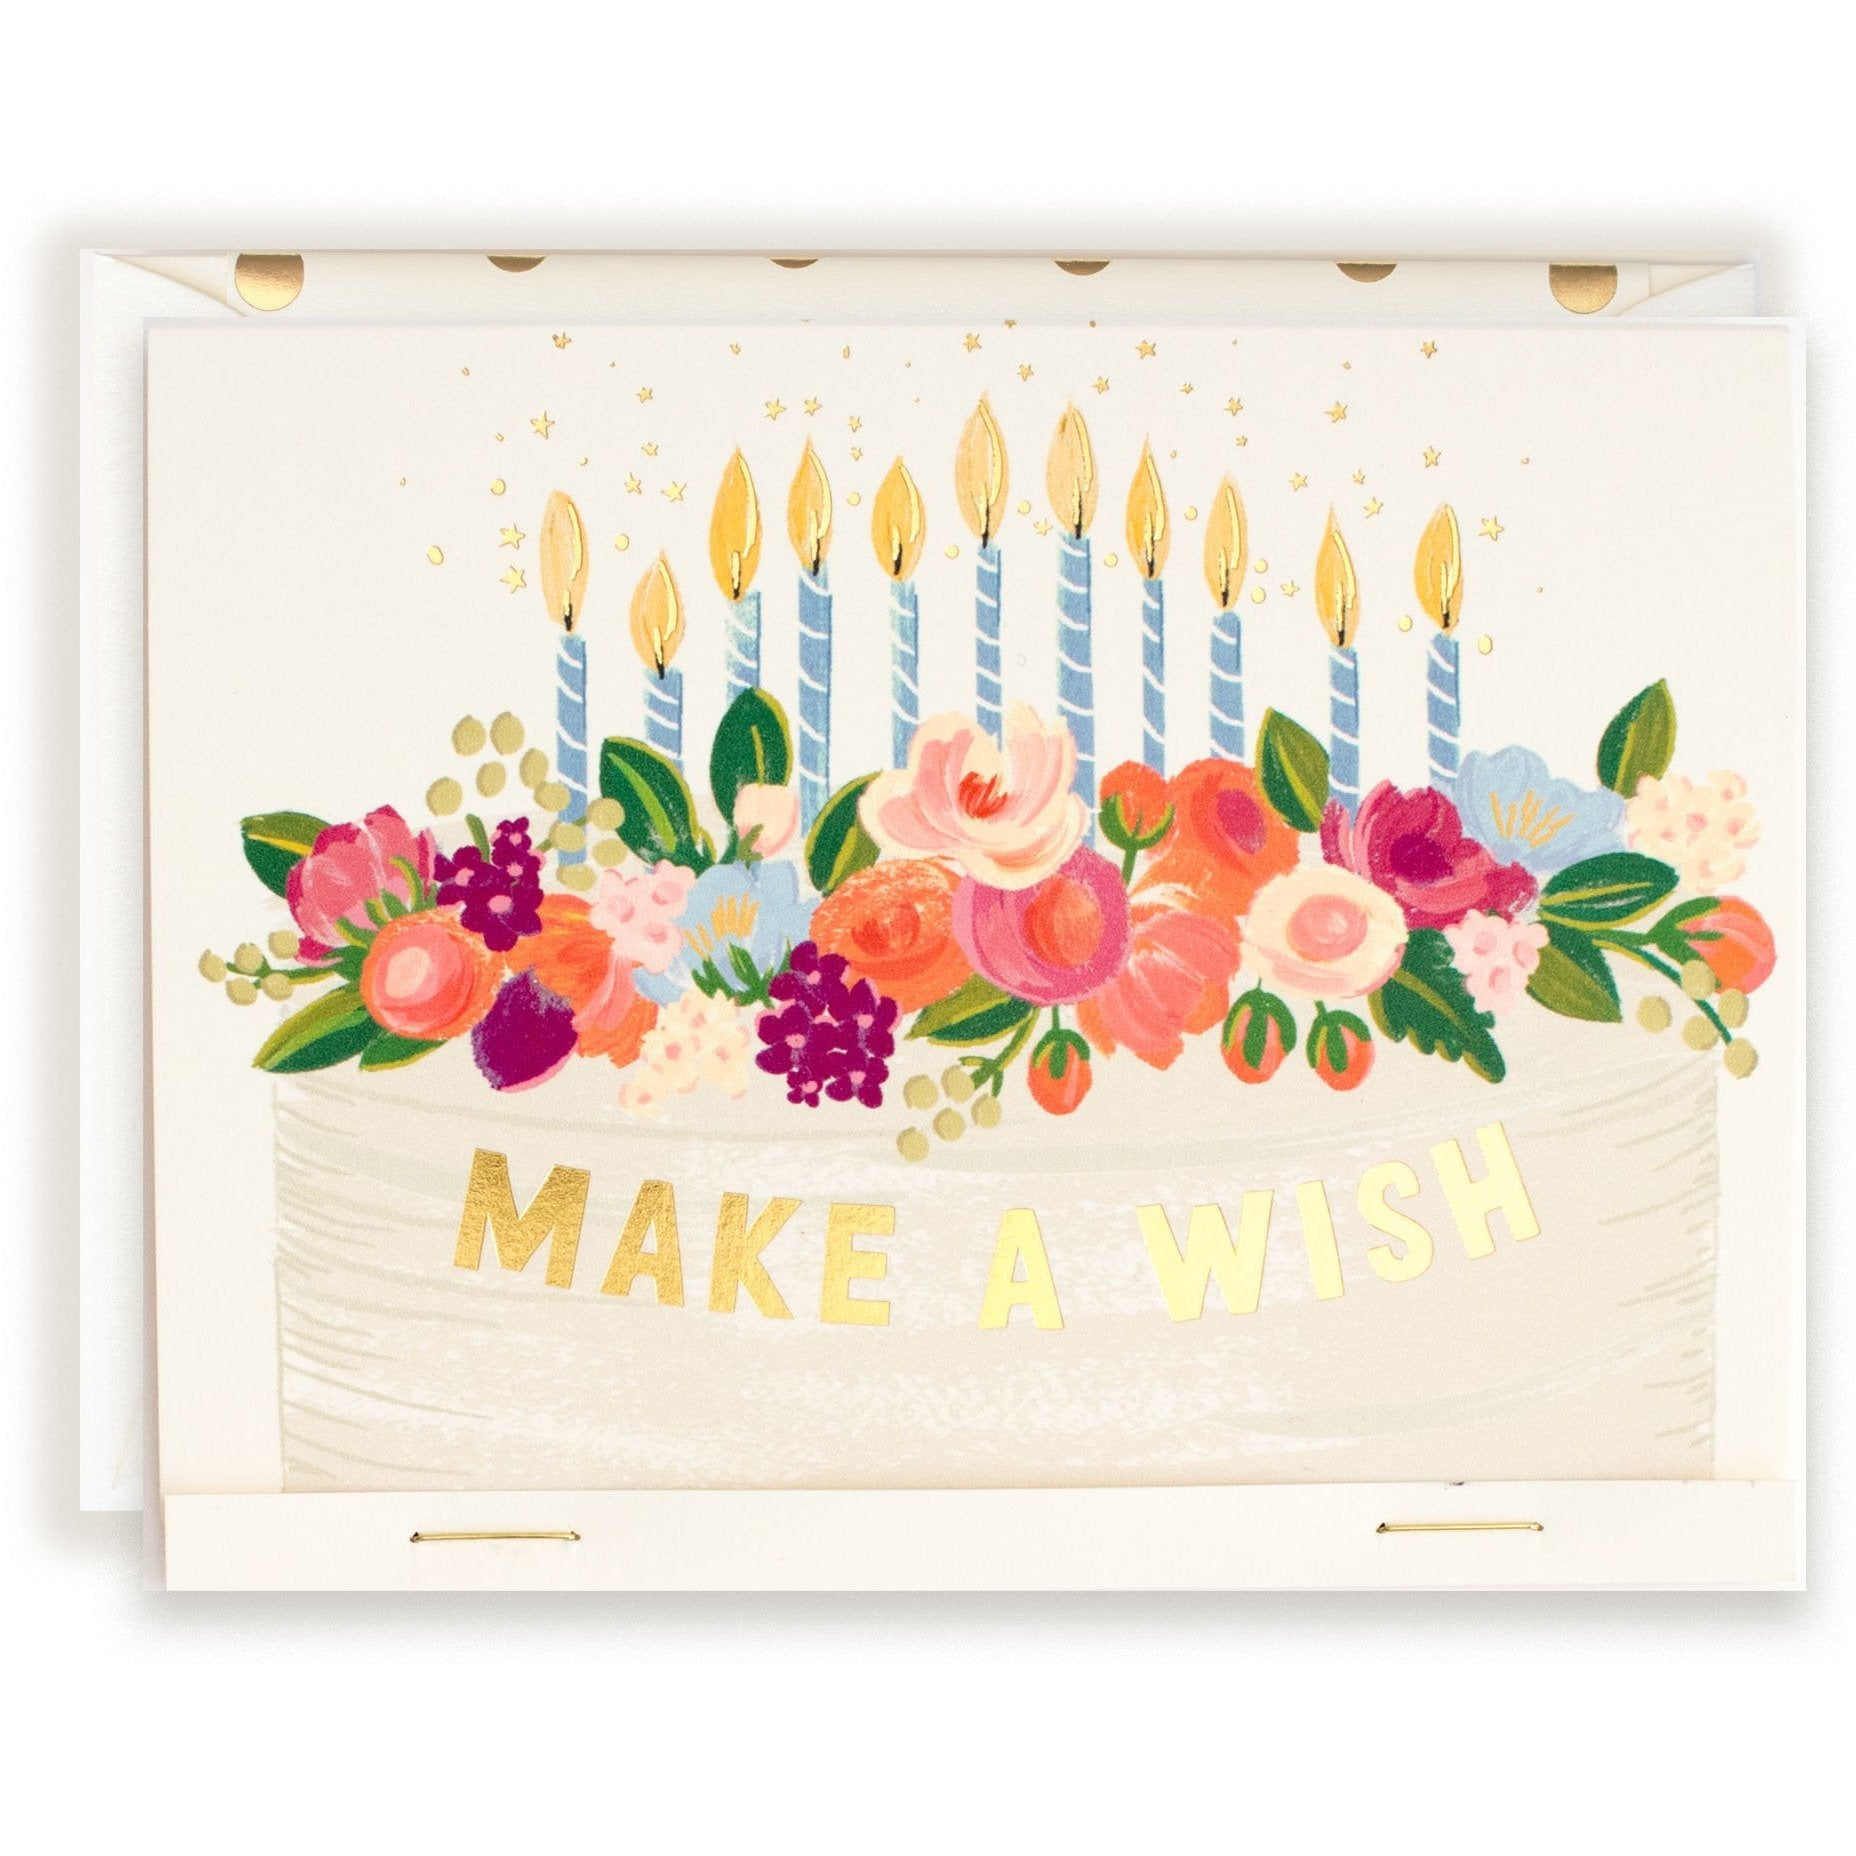 Make a Wish, It's Your Birthday Frosted Cake Birthday Card - The First Snow